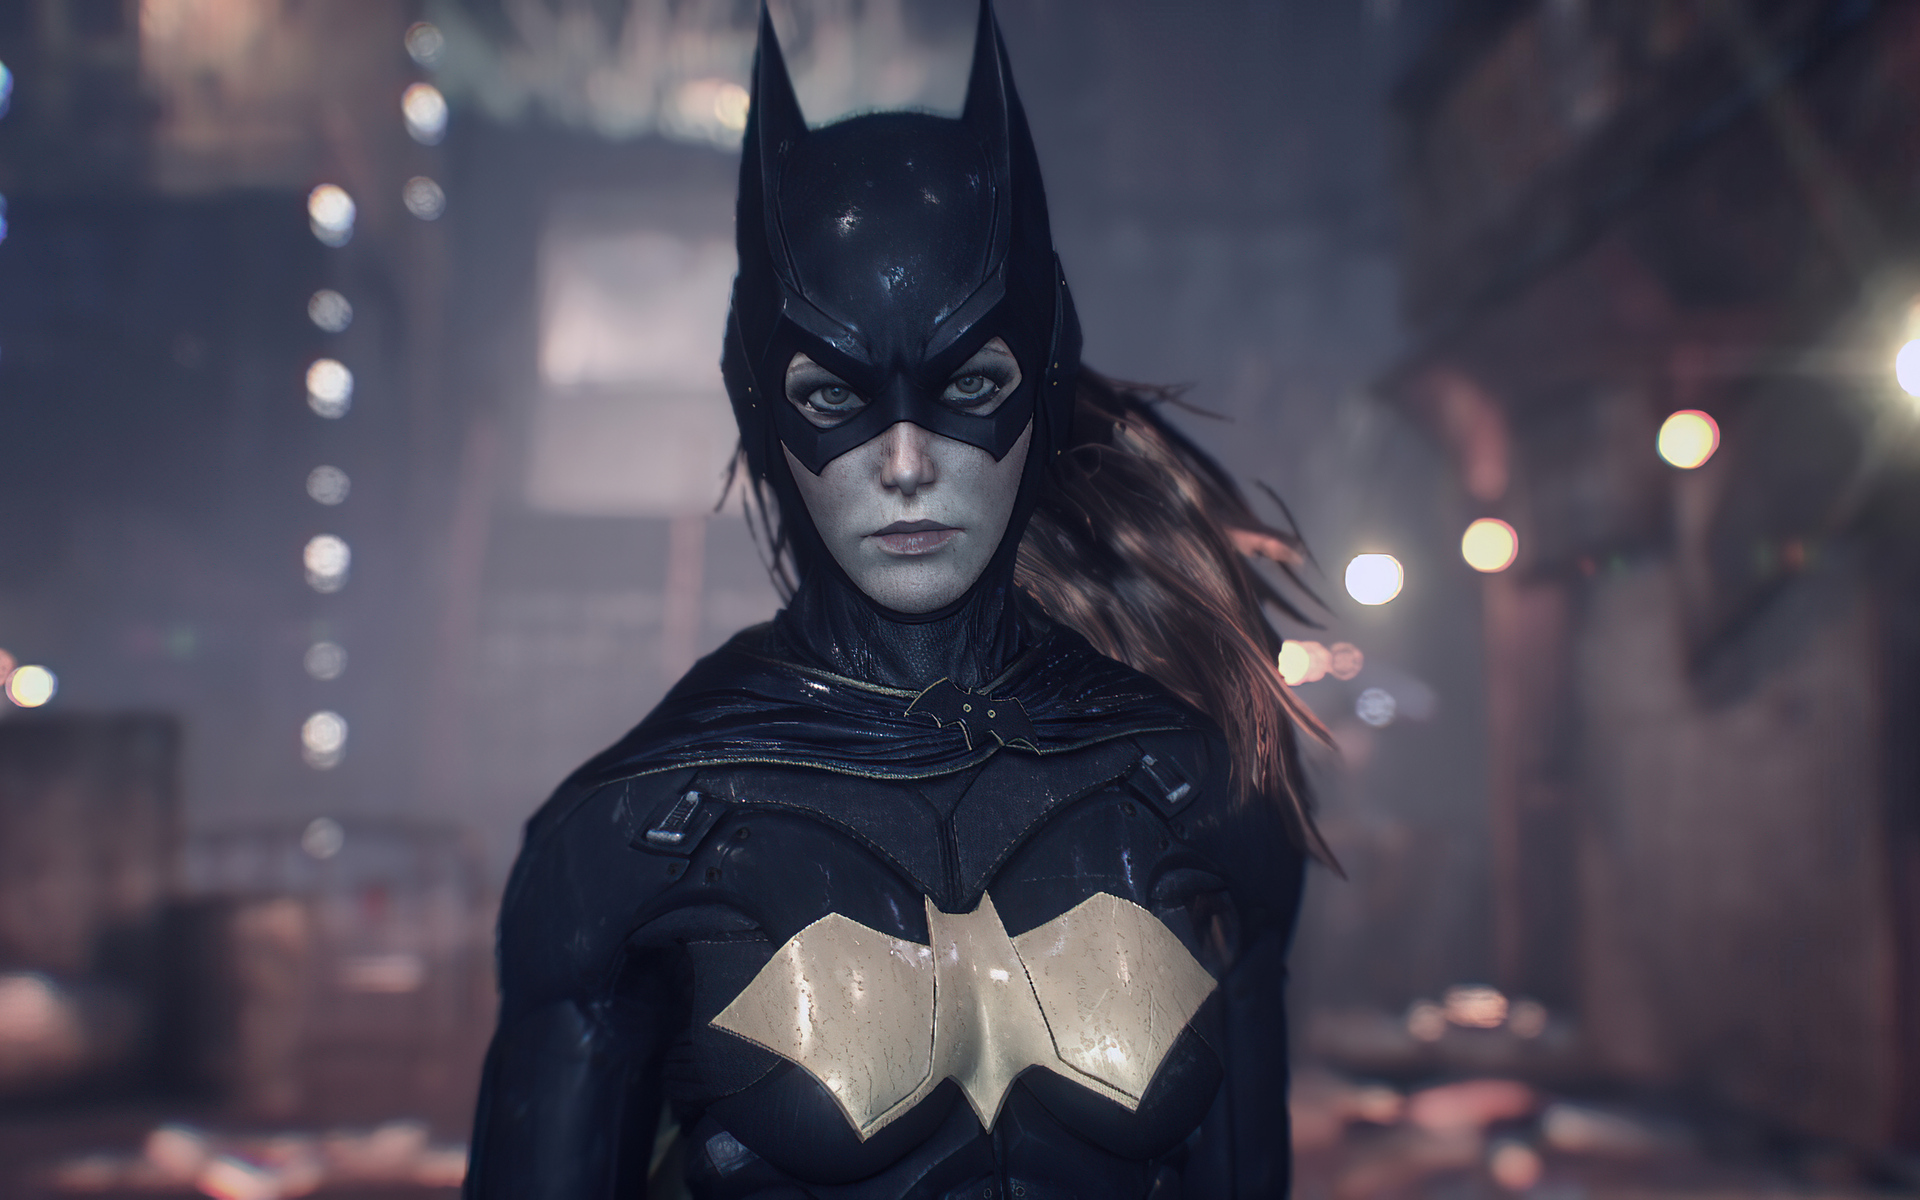 batgirl-from-batman-arkham-knight-4k-x6.jpg